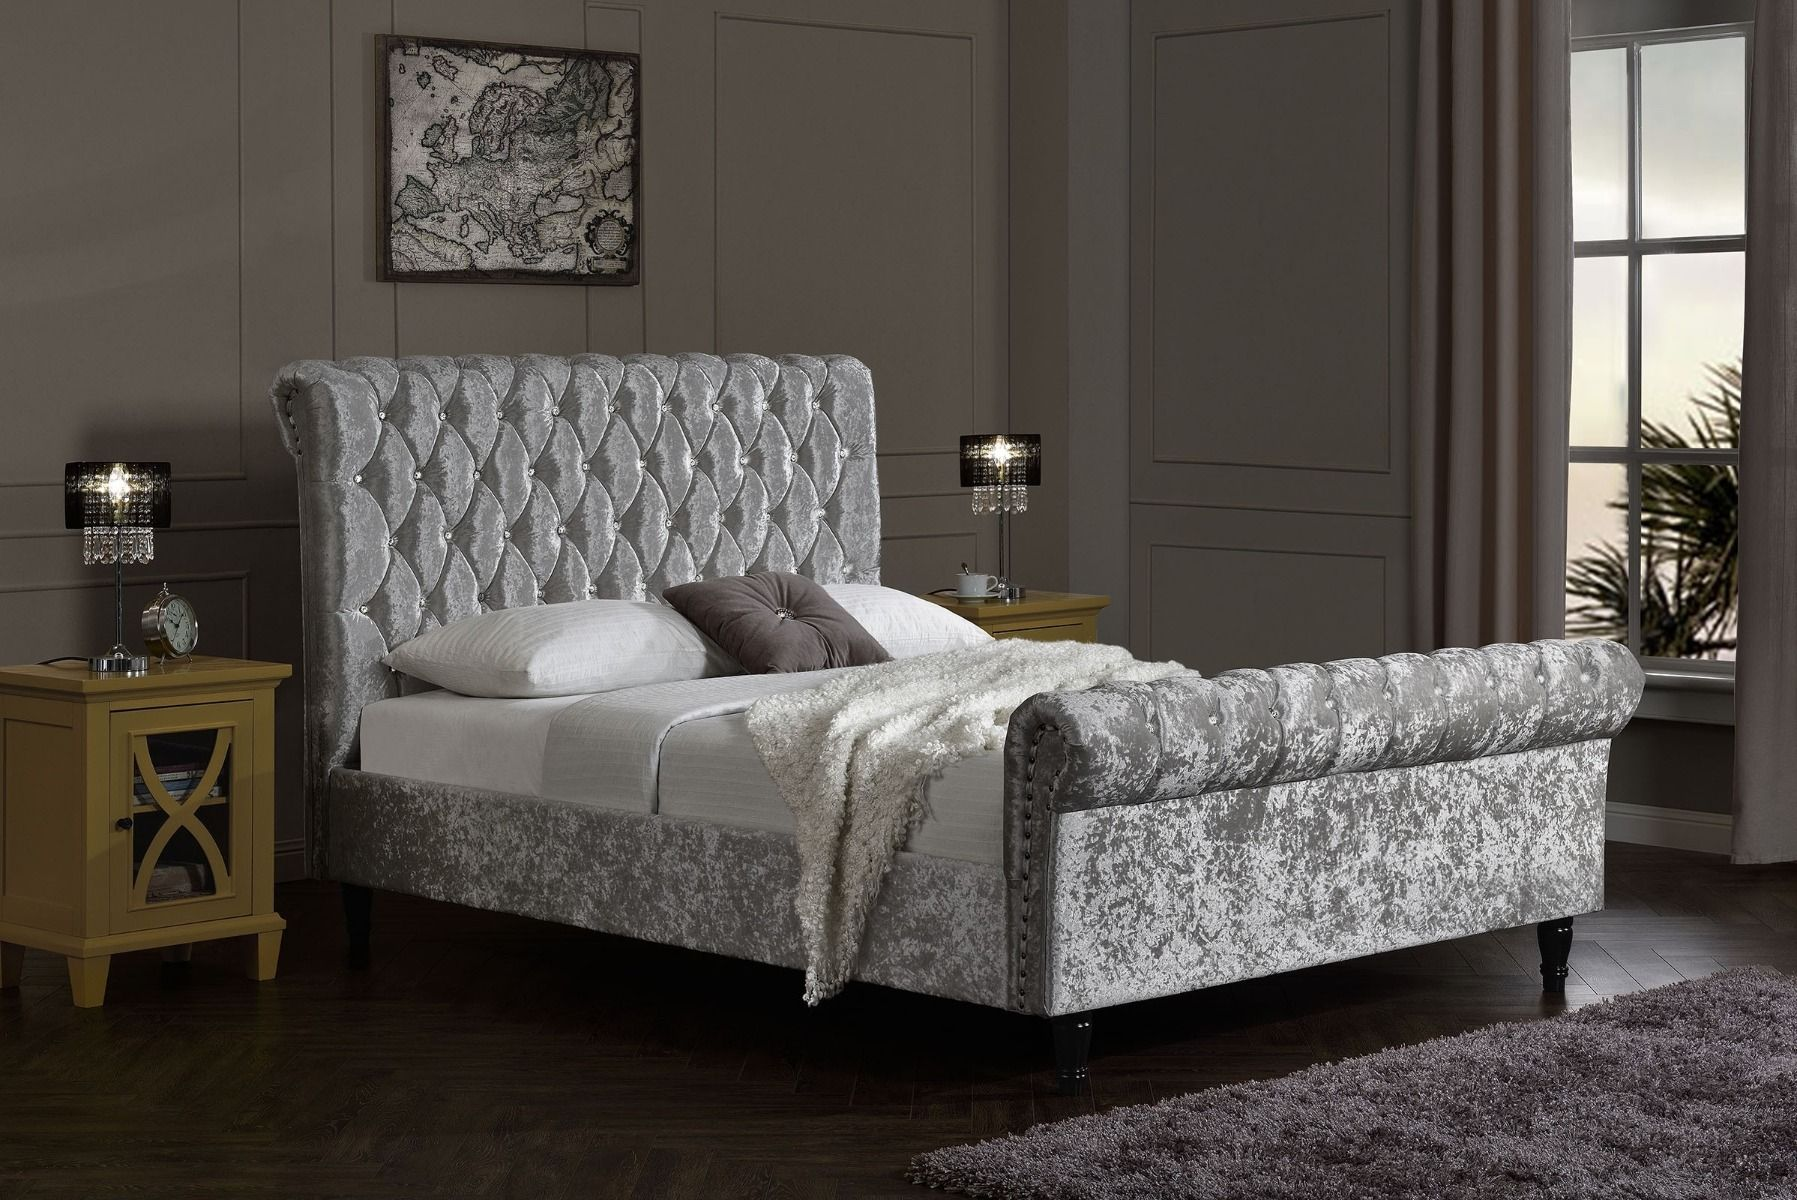 silver crushed velvet chesterfield bed modish furnishing. Black Bedroom Furniture Sets. Home Design Ideas